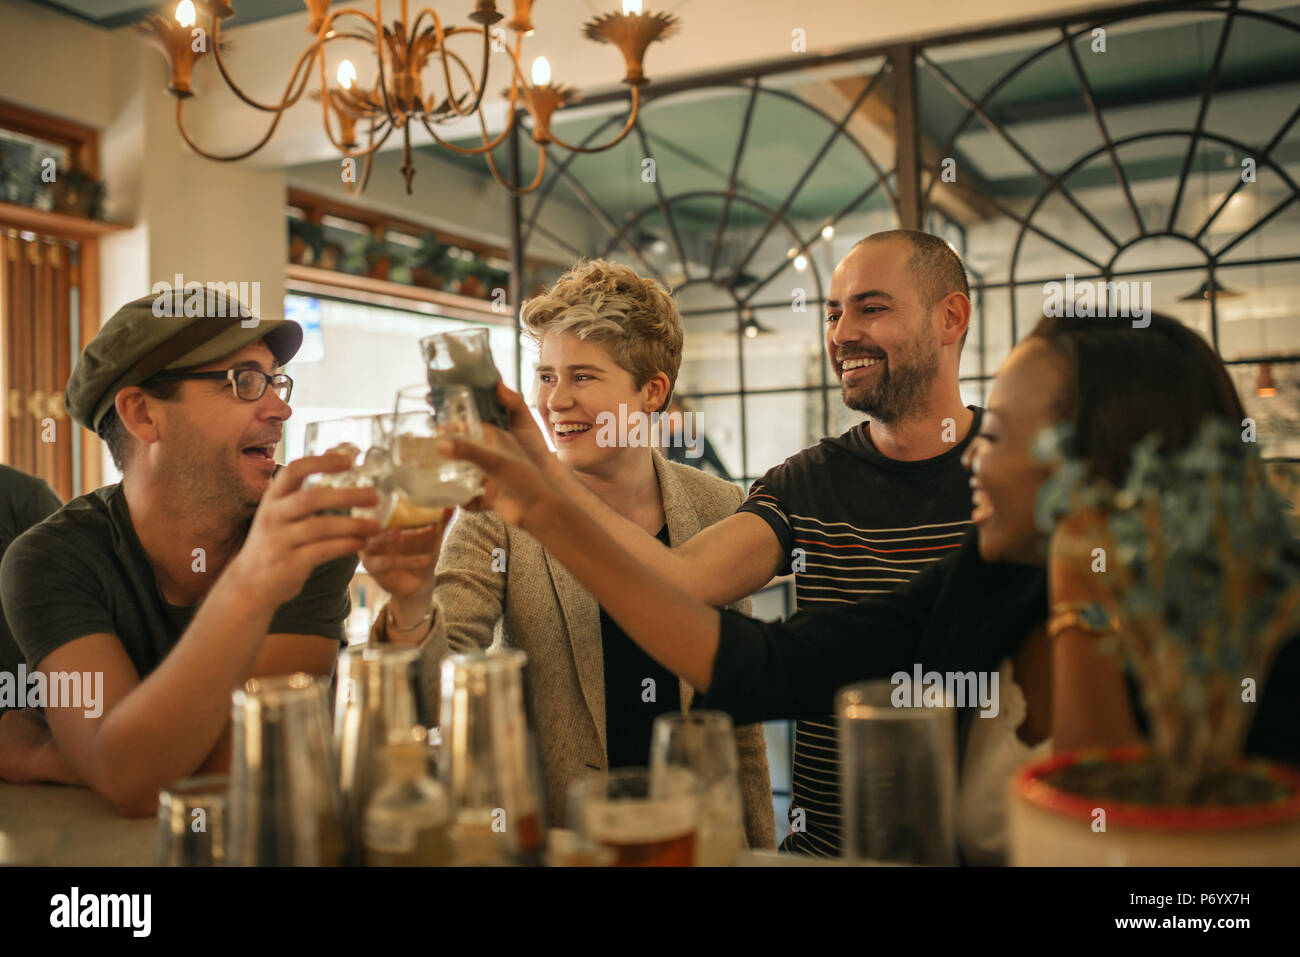 Group of friends cheering with drinks in a trendy bar - Stock Image